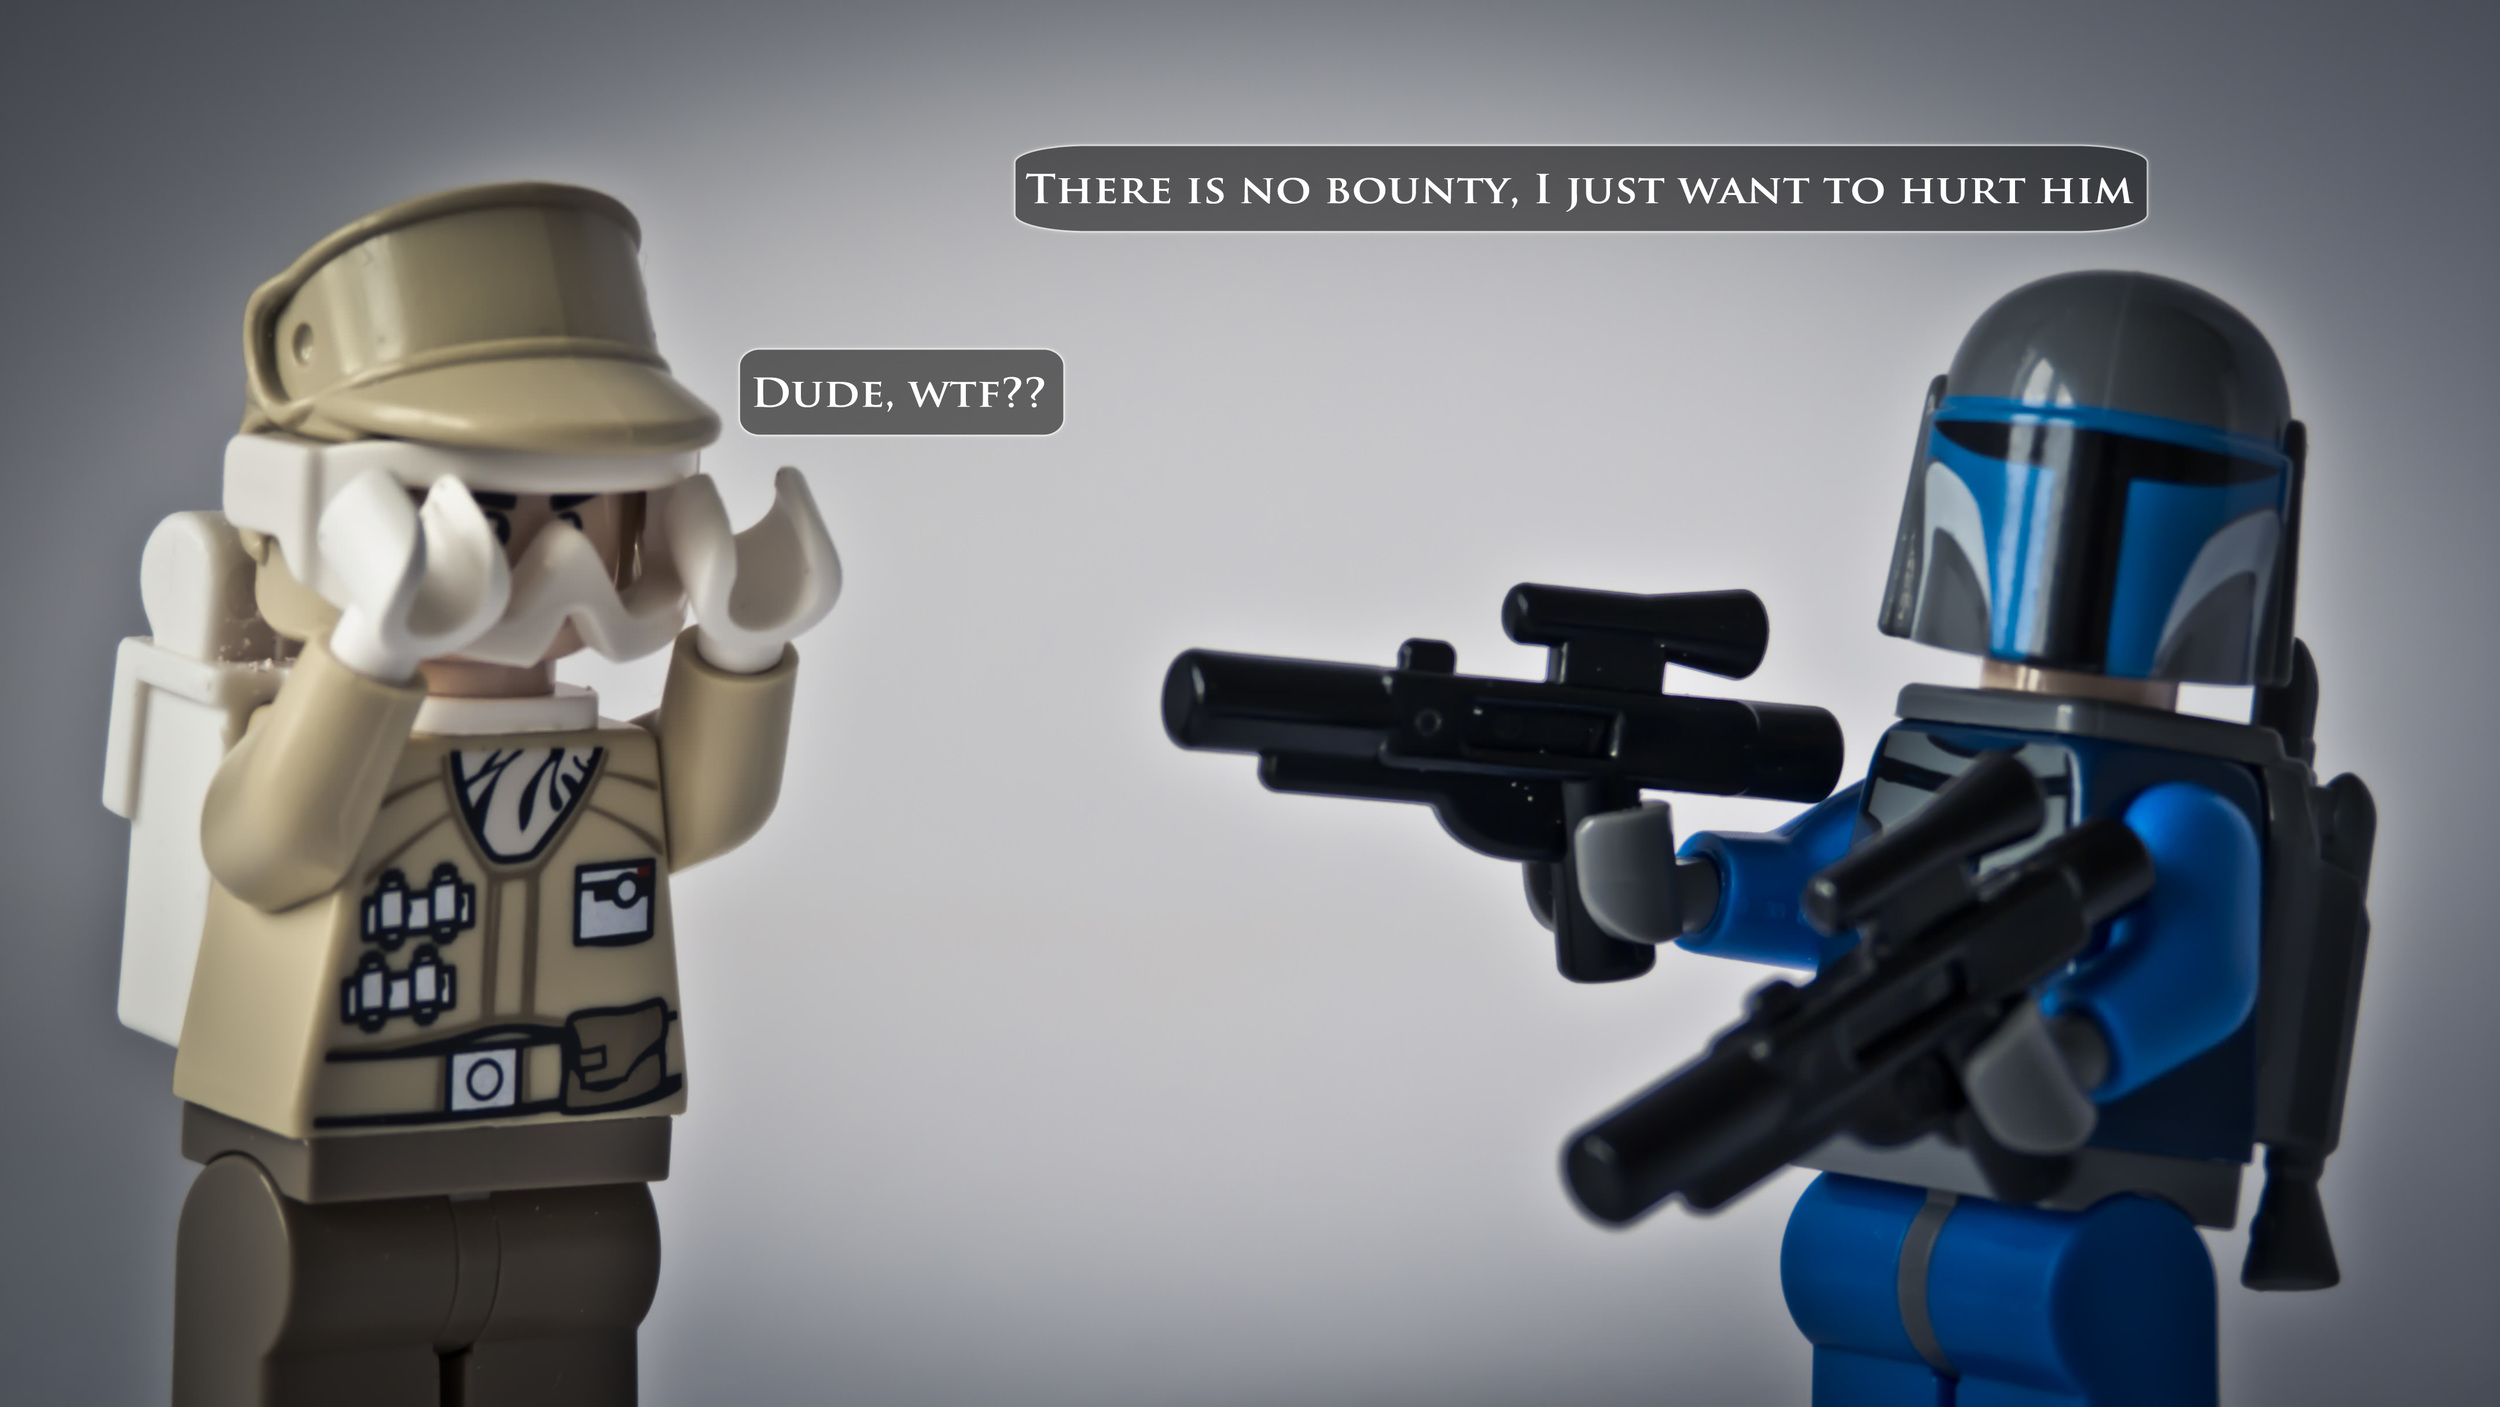 Little Troopers - Just want to kill him-Edit.jpg